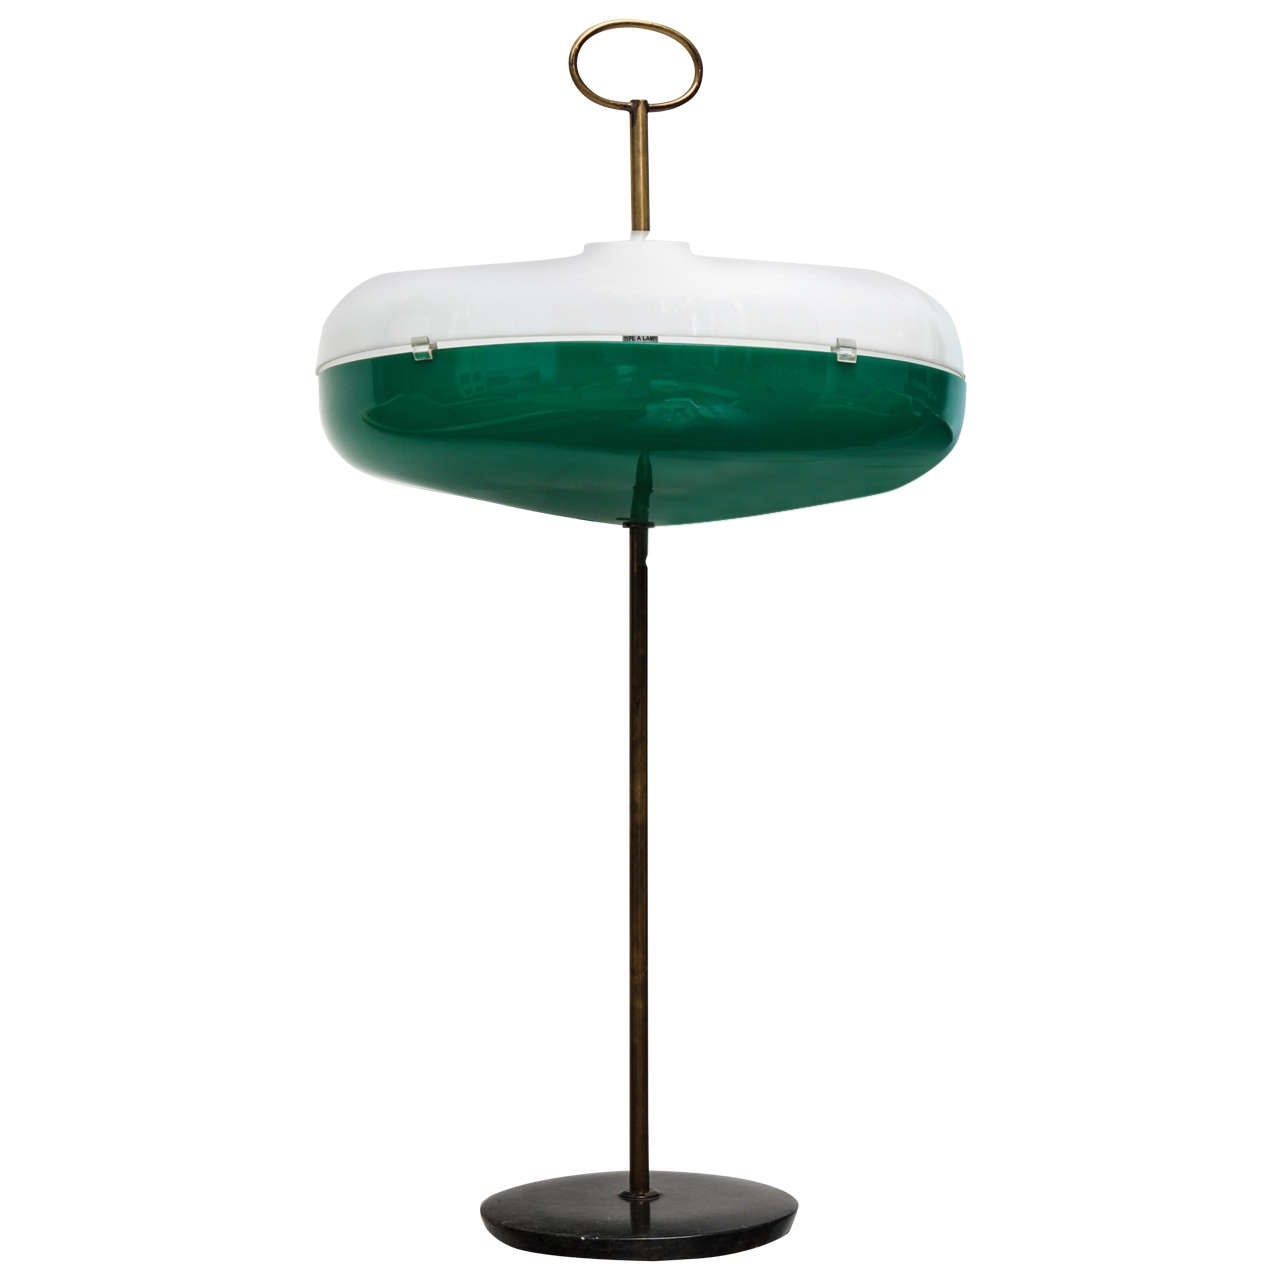 Unusual Table Lamp Attributed To Arredoluce At 1stdibs